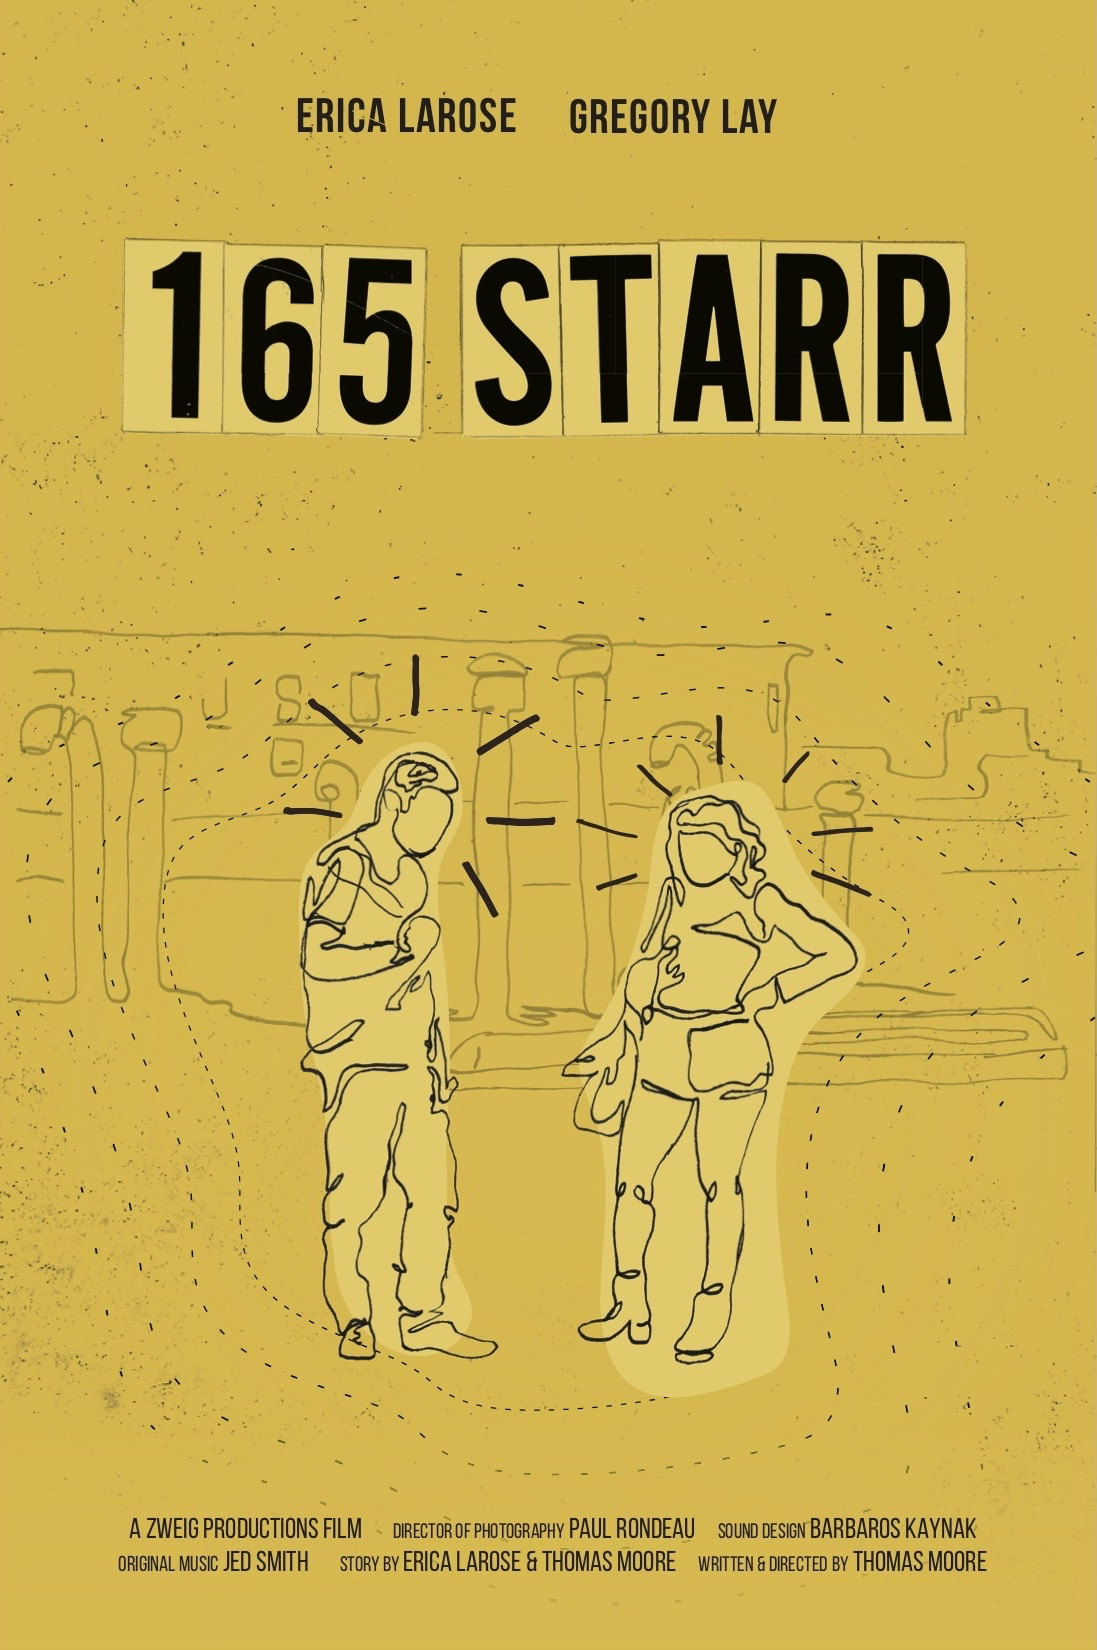 165 STARR - I'm excited to share this short film I've co-created with Studio Moniker very soon! It explores the dynamic of a couple as they are stuck inside a Brooklyn building.